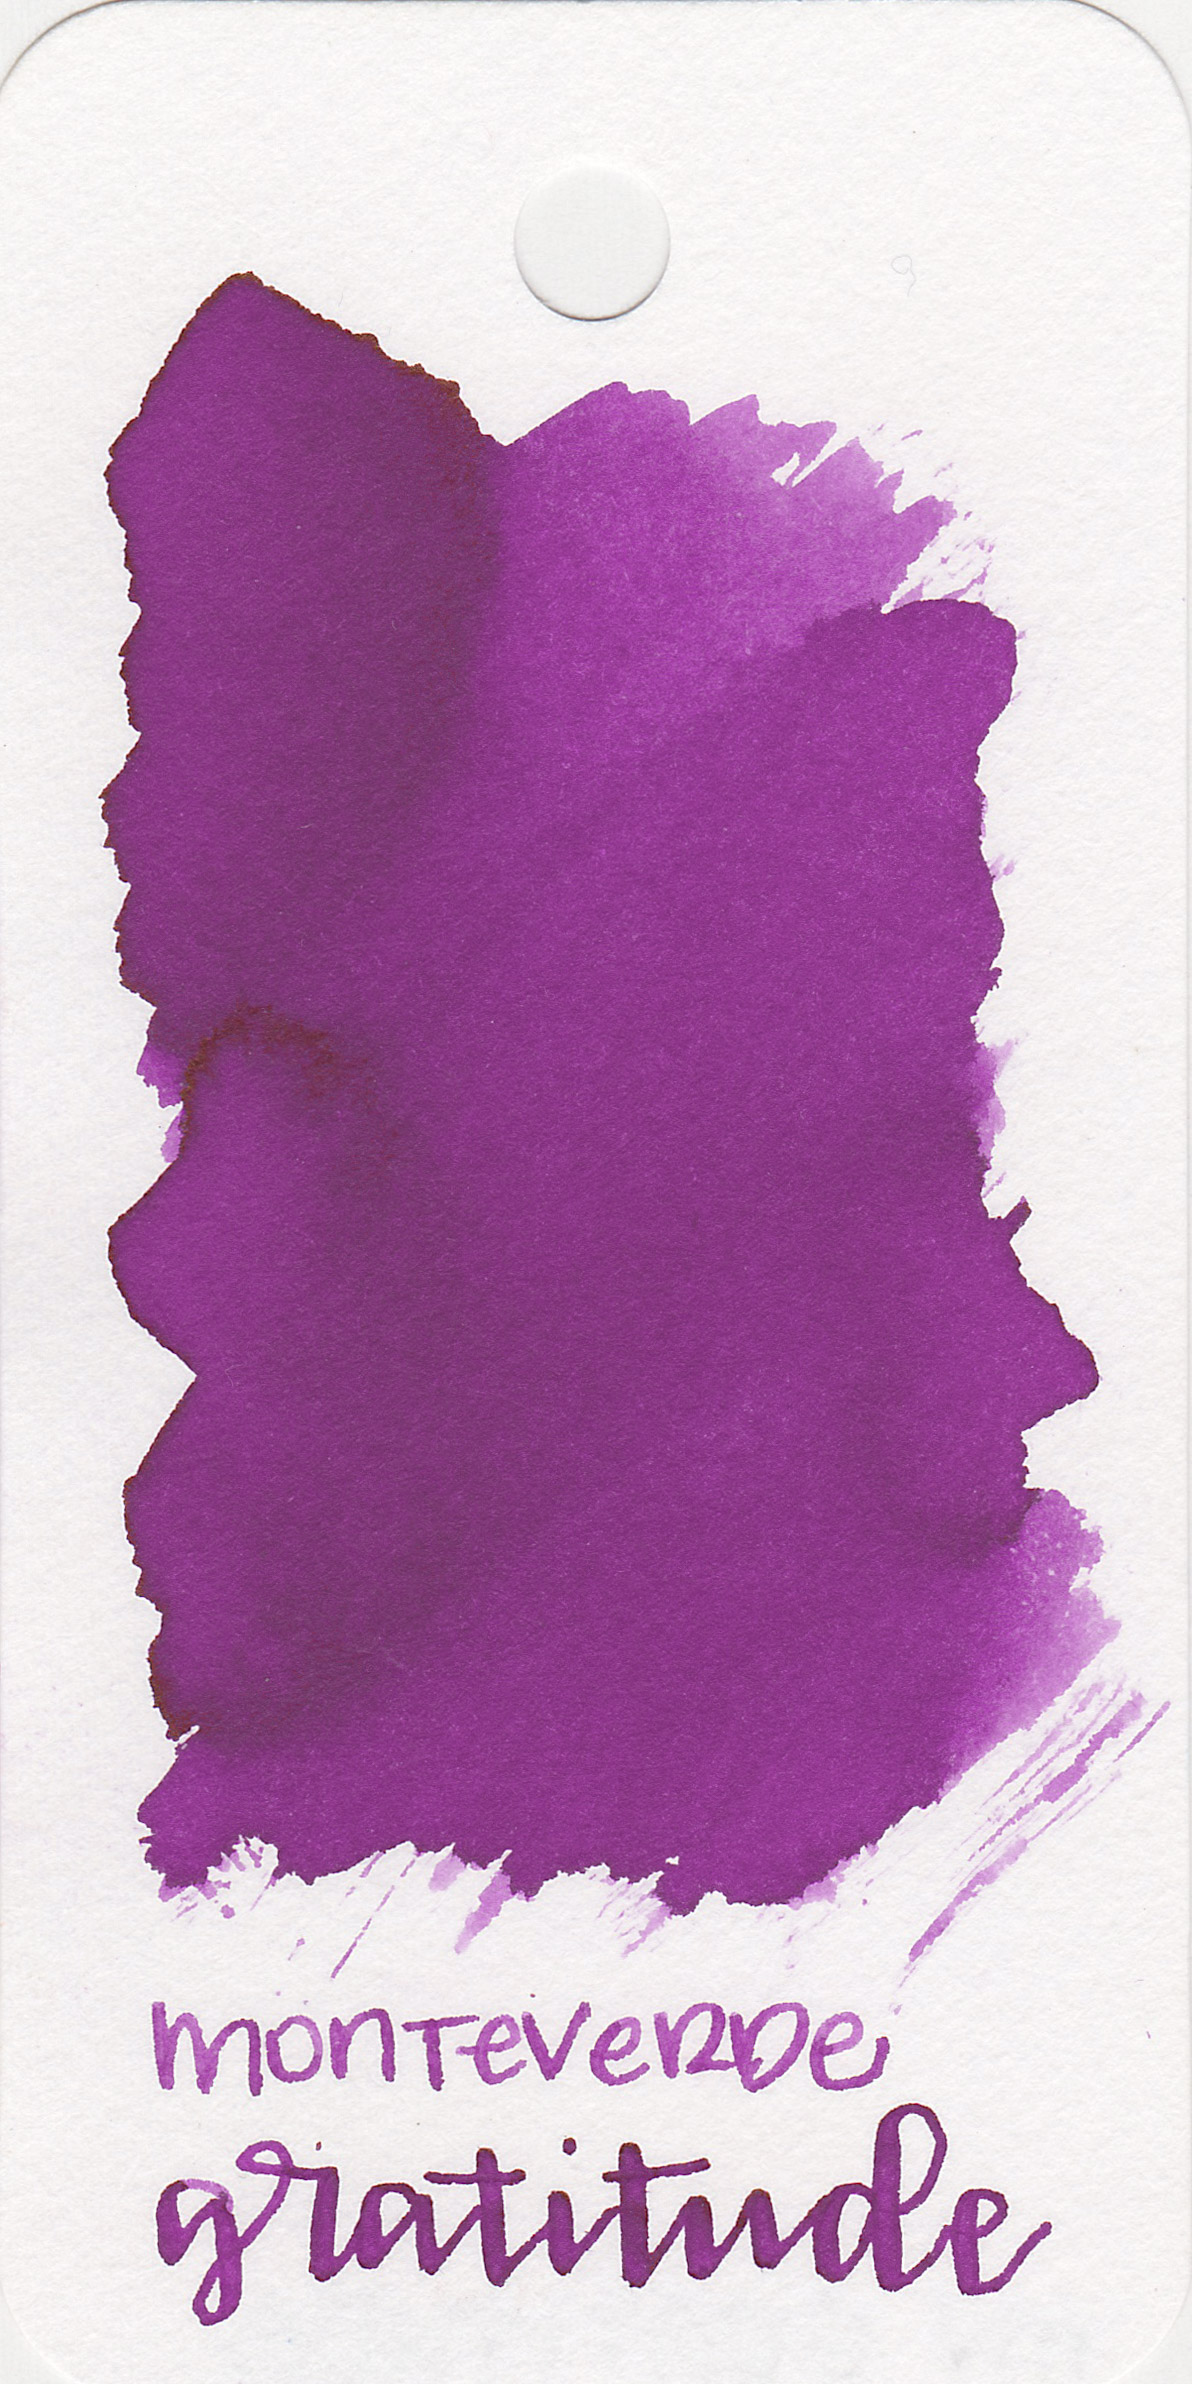 The color: - Gratitude Magenta is a dark magenta, right in-between pink and purple.